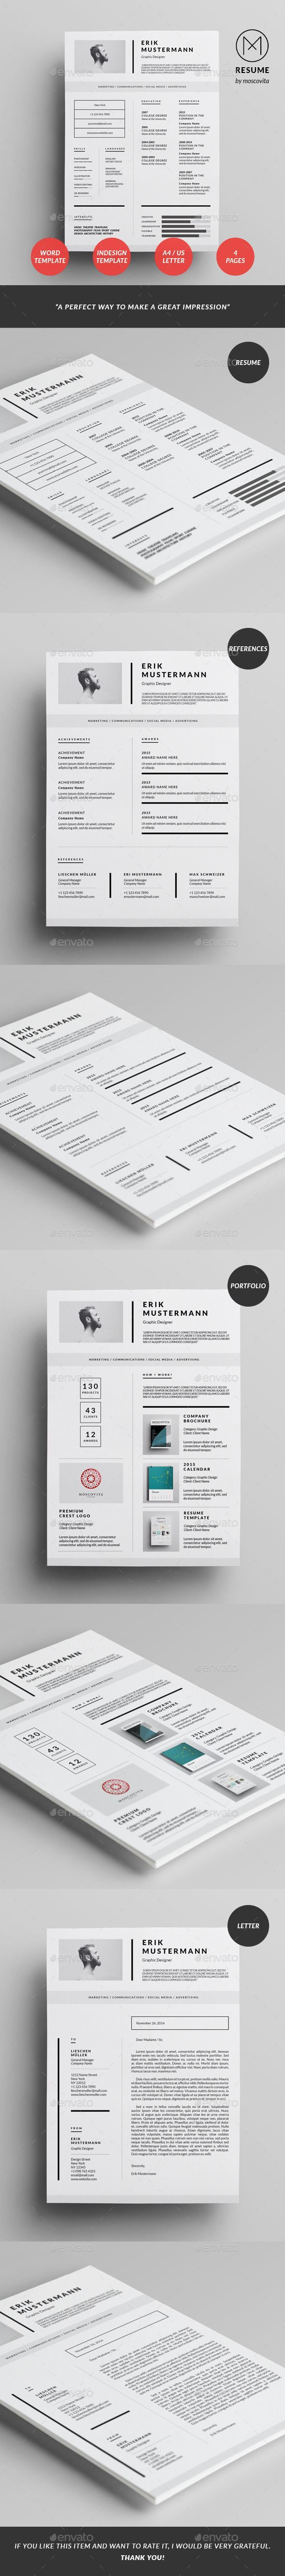 Template For A Resume In Word%0A The Clean Resume Template is a very clean and professional way to make a  great impression  You can present the relevant information combining  simplicity and